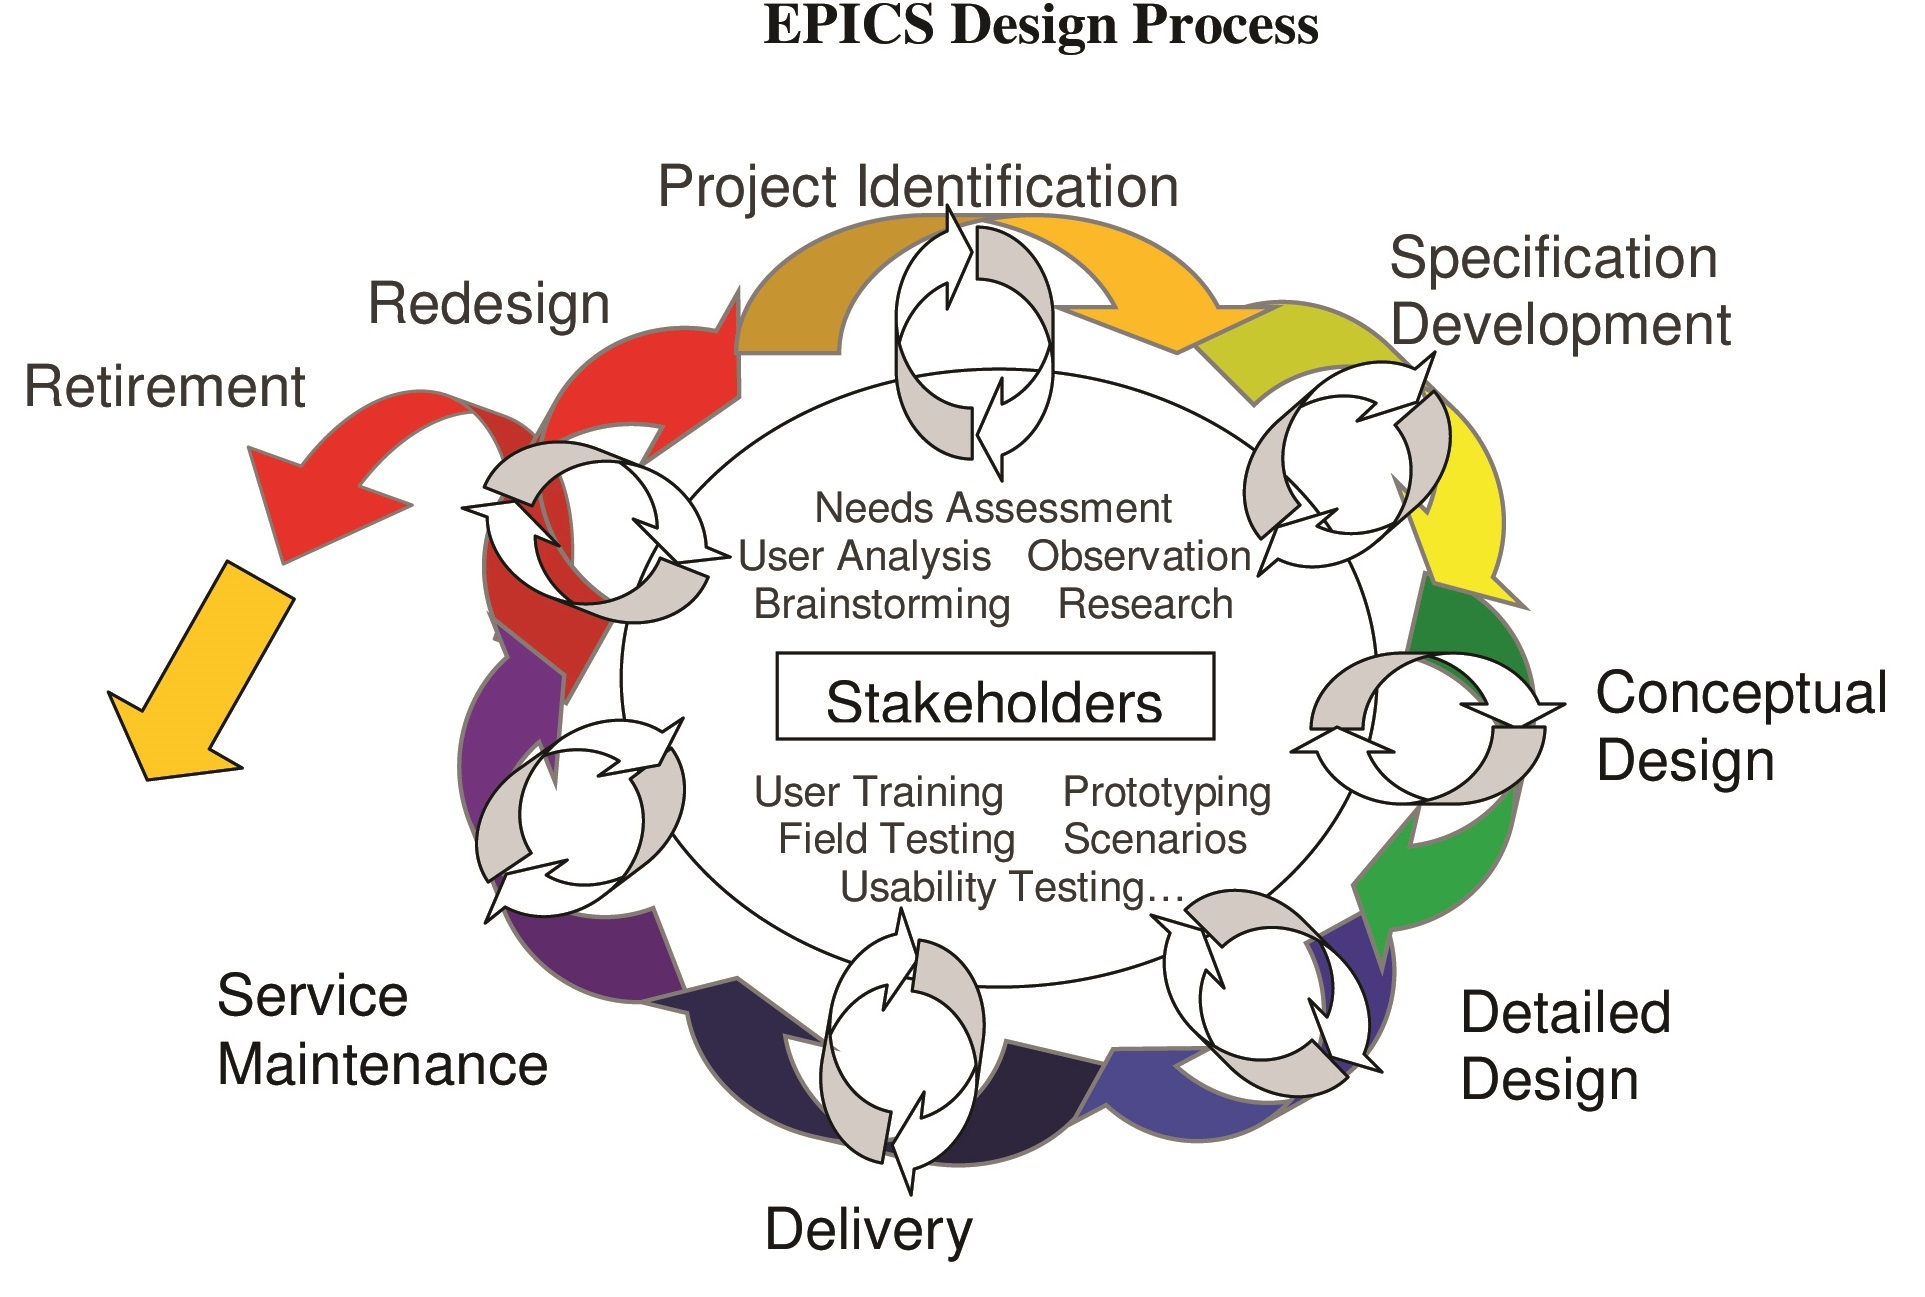 Epics Design Process